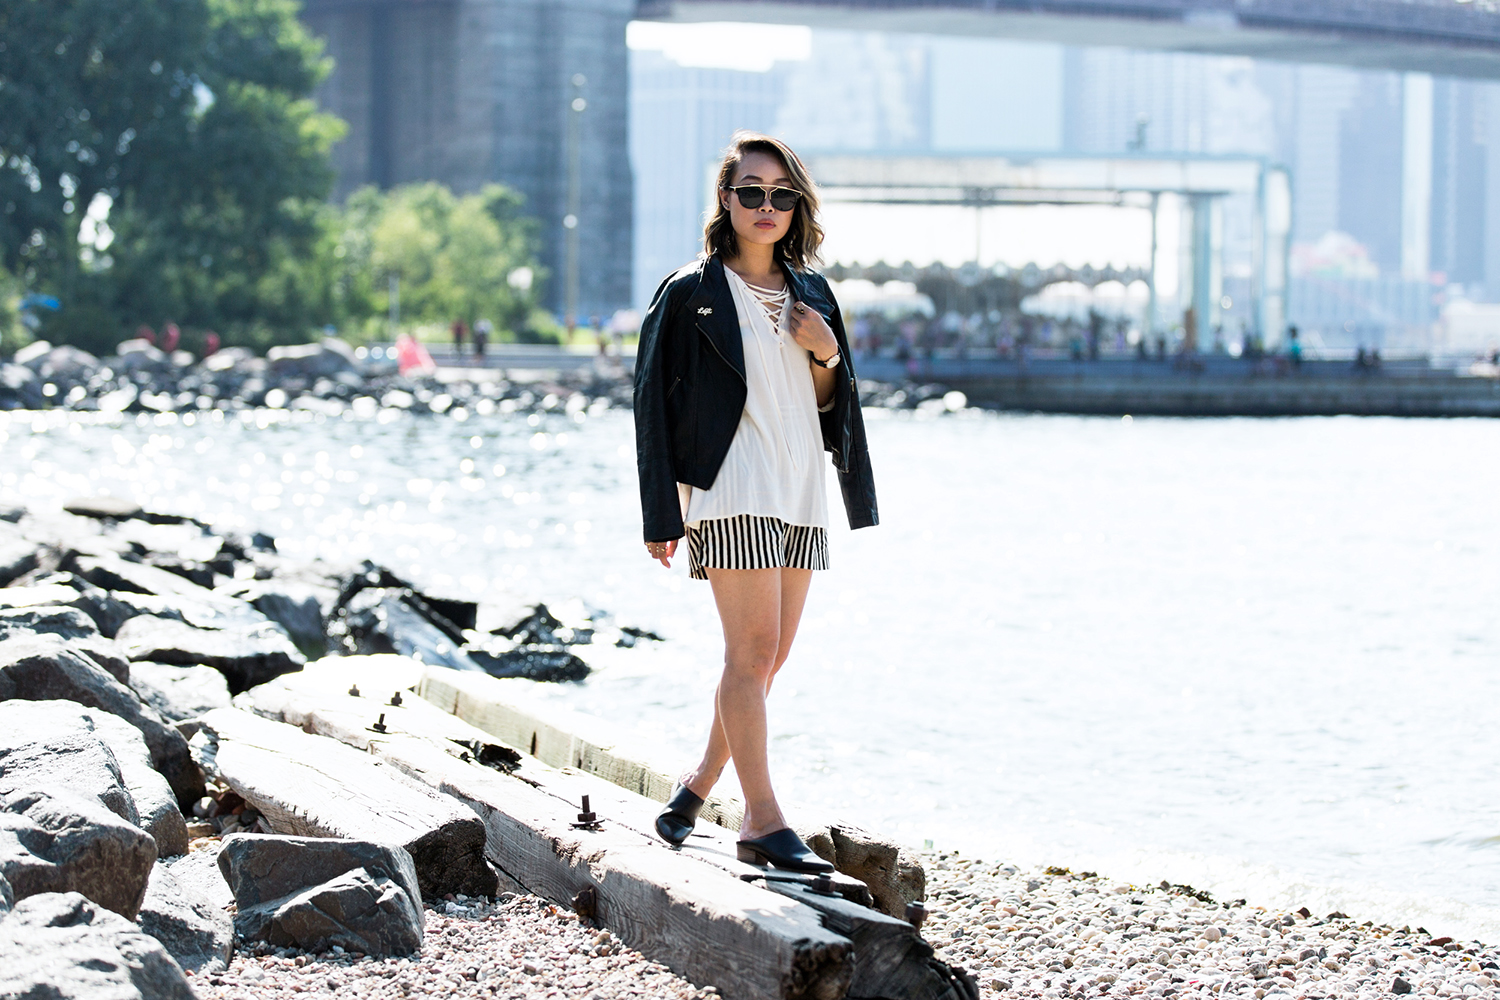 04brooklyn-nyc-newyork-travel-fashion-style